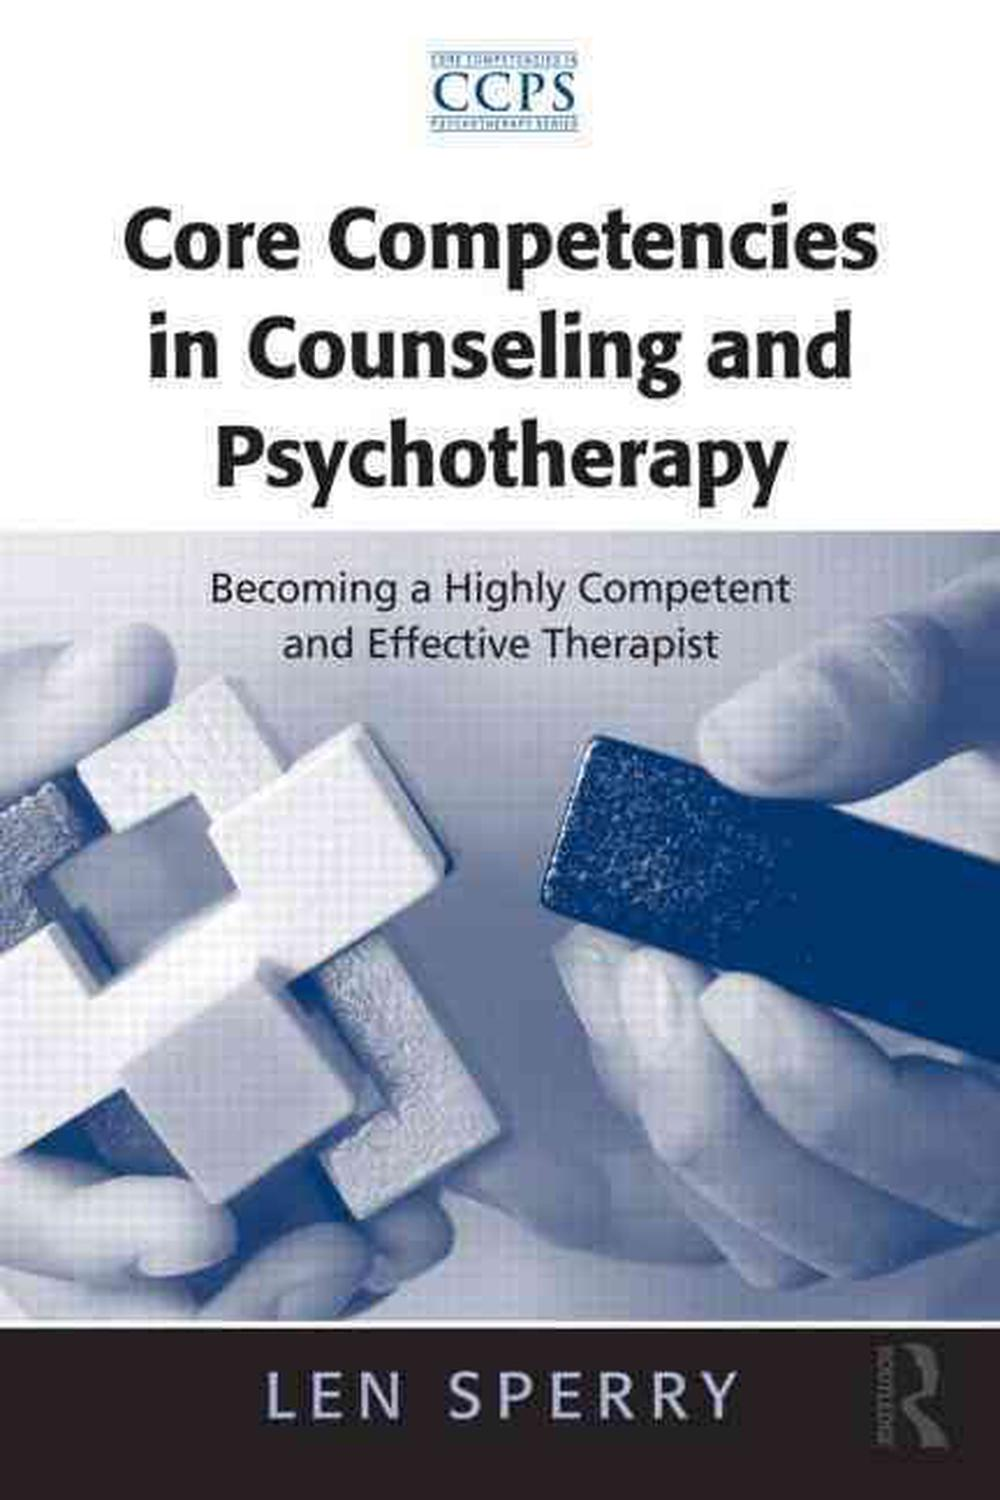 counselling and psychotherapy 2 essay Definition of counselling and psychotherapy psychotherapy and counselling are professional activities that utilise an interpersonal relationship to enable people to develop self understanding and to make changes in their lives.